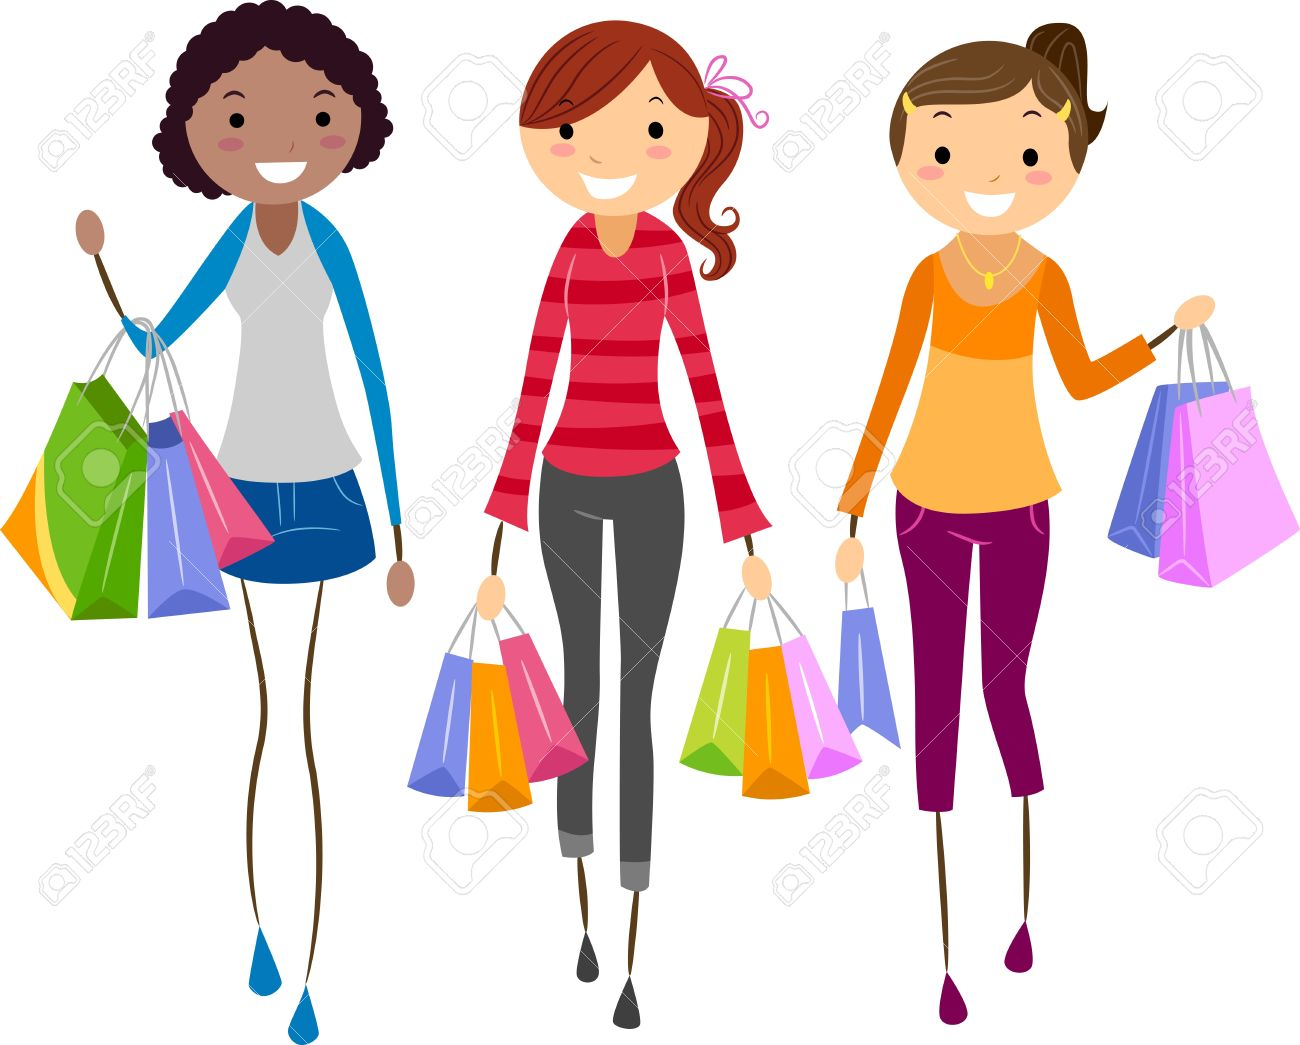 Illustration Of Girls Shopping Together Stock Photo, Picture And.